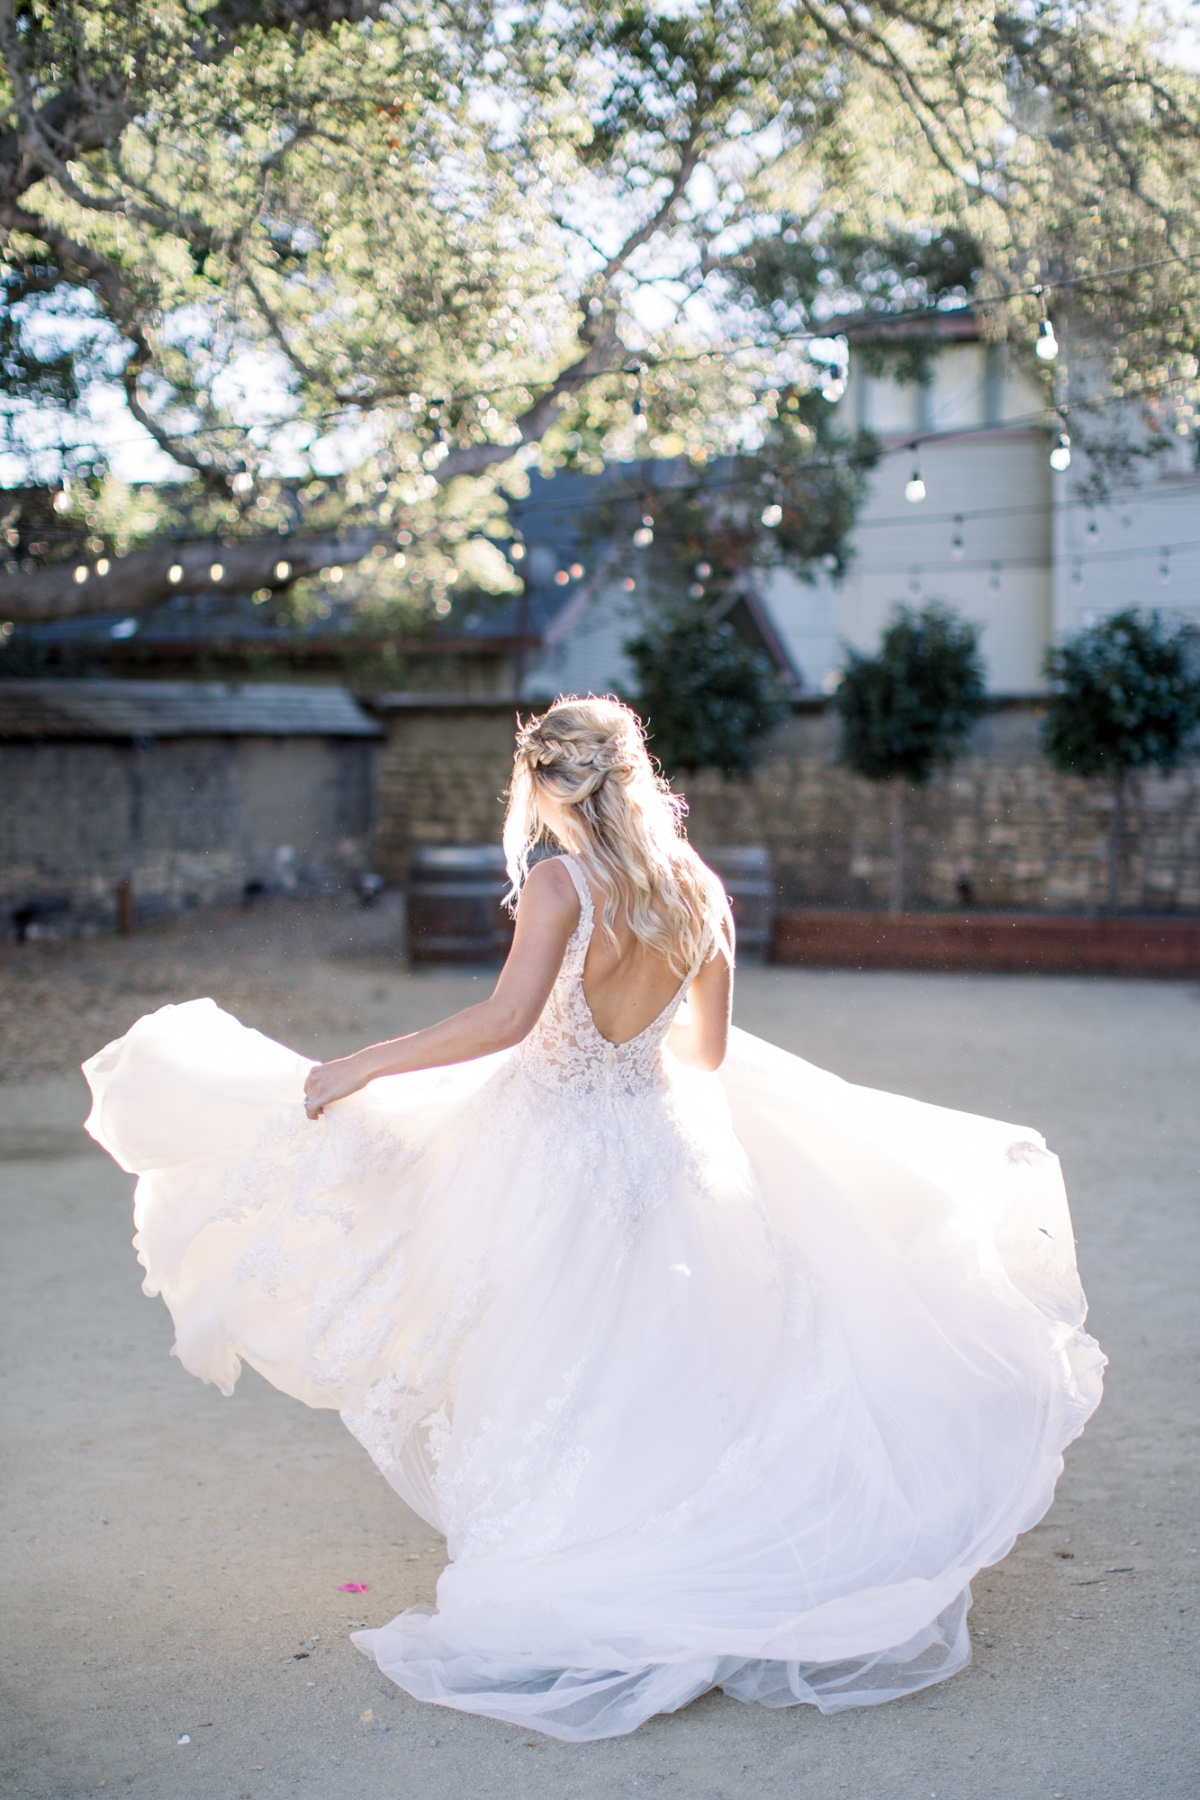 Twirl the wedding dress